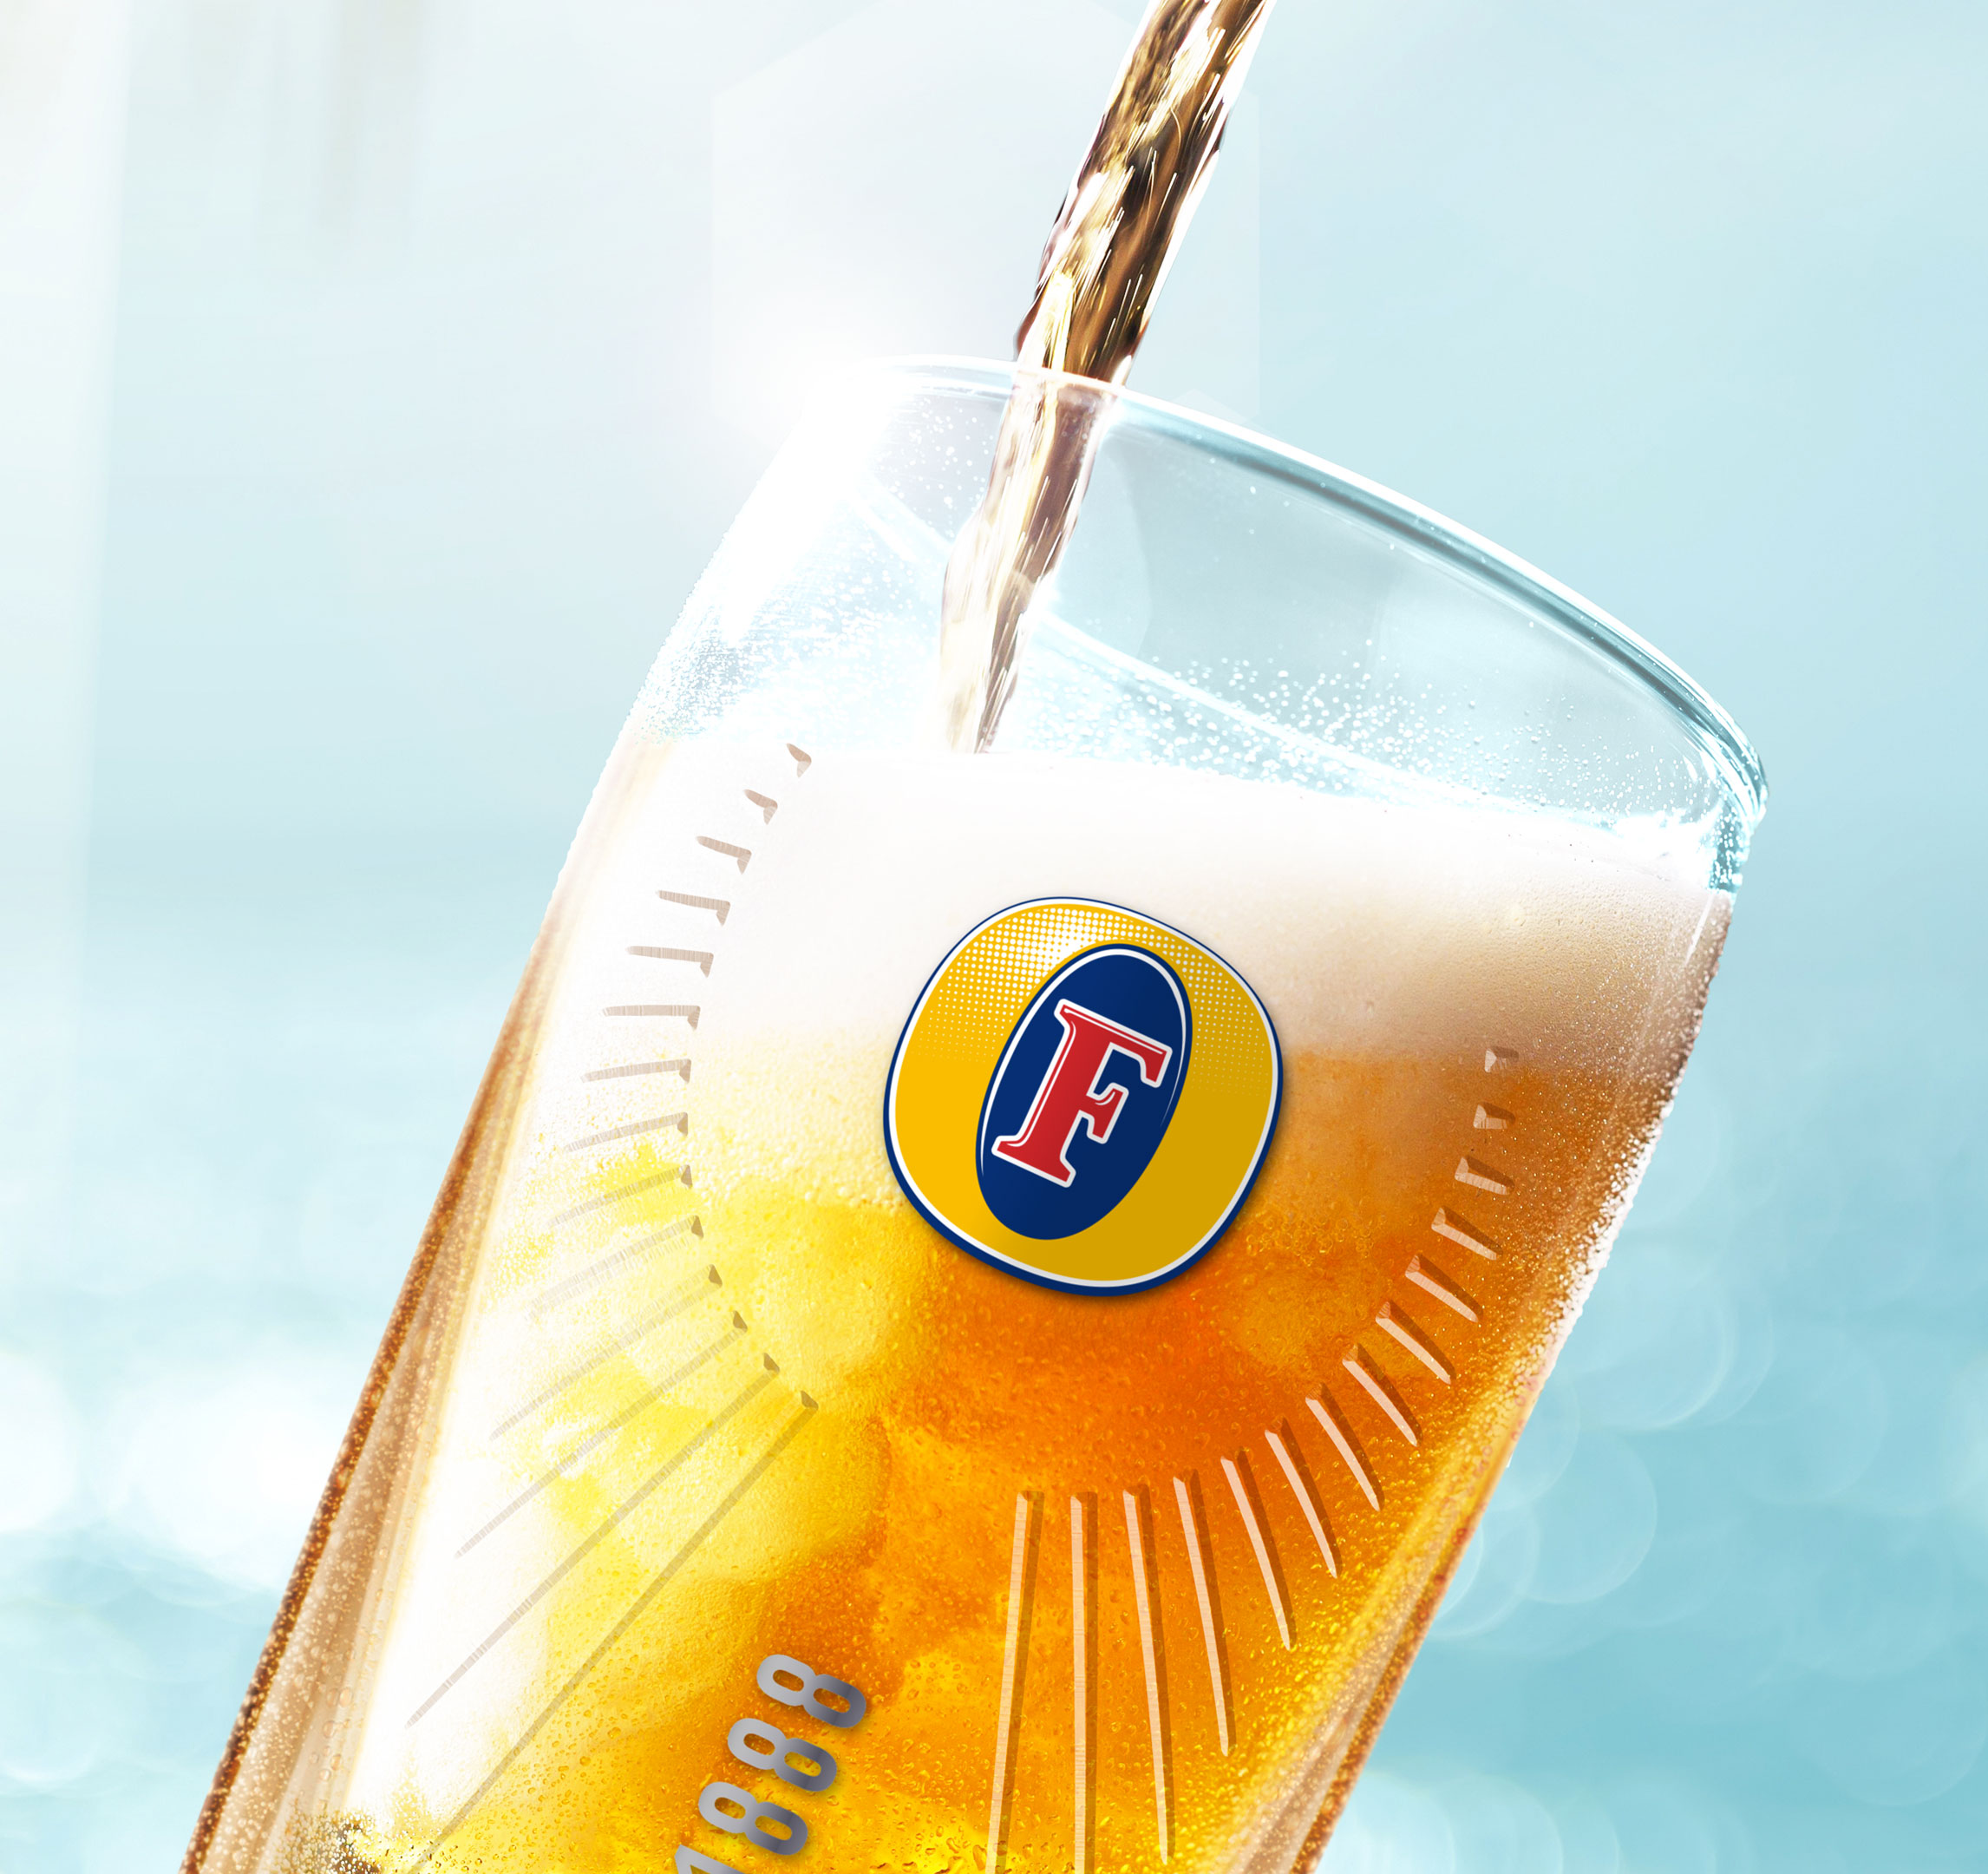 Foster's Beer Glass Design